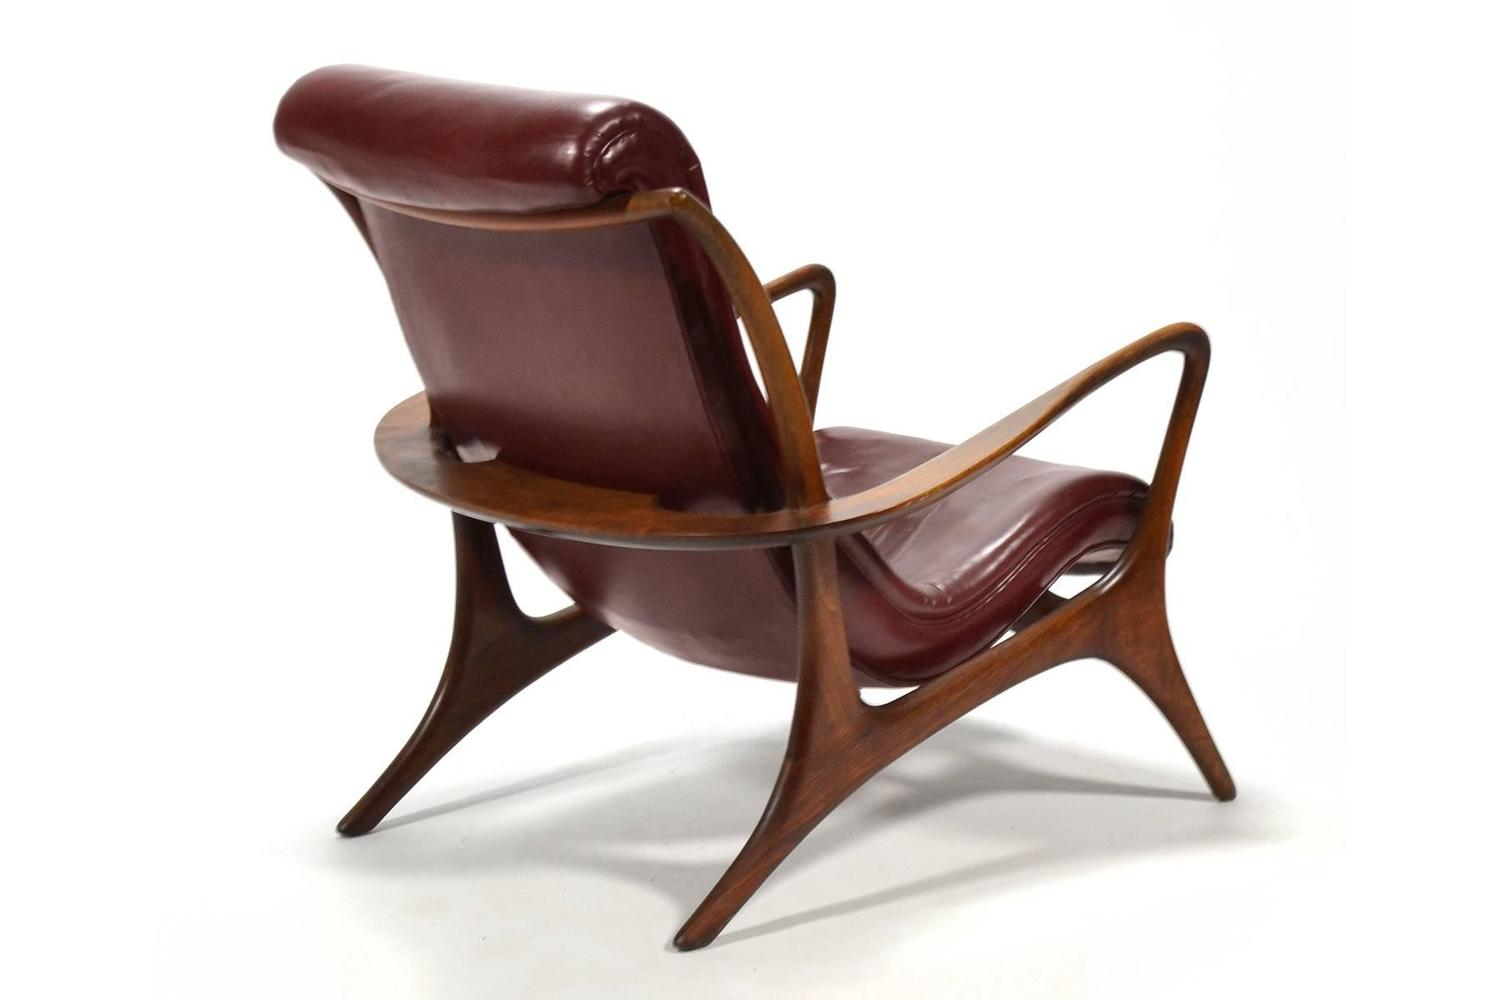 Vladimir Kagan Contour Lounge Chairs and Ottoman For Sale at 1stdibs